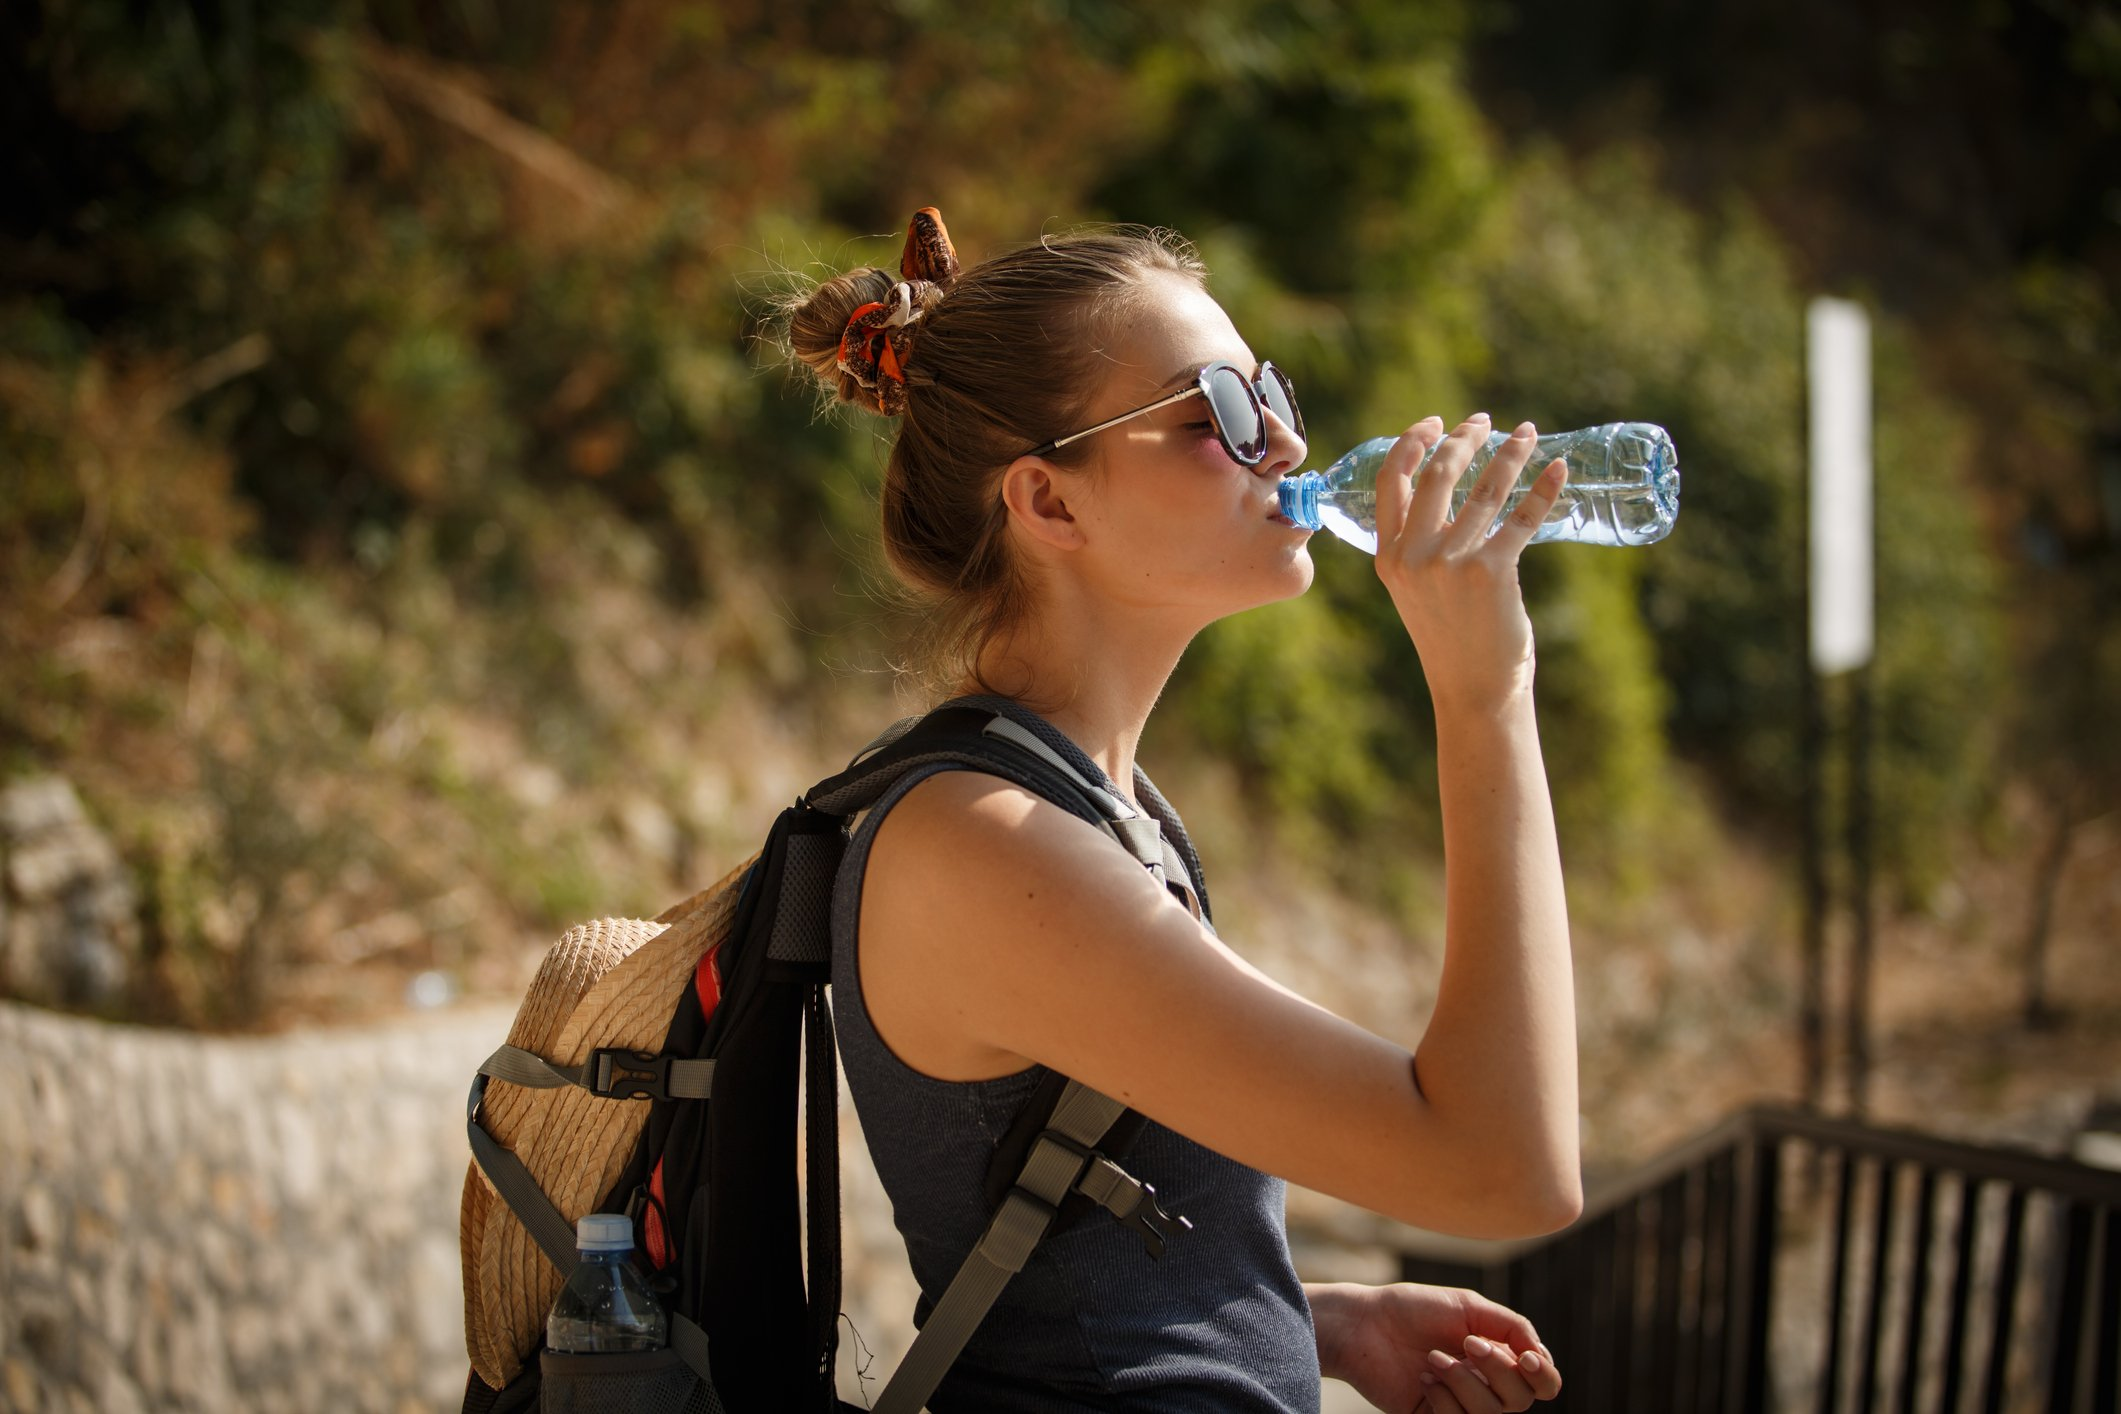 Side view of a young woman with a backpack drinking water from a plastic bottle outdoors.